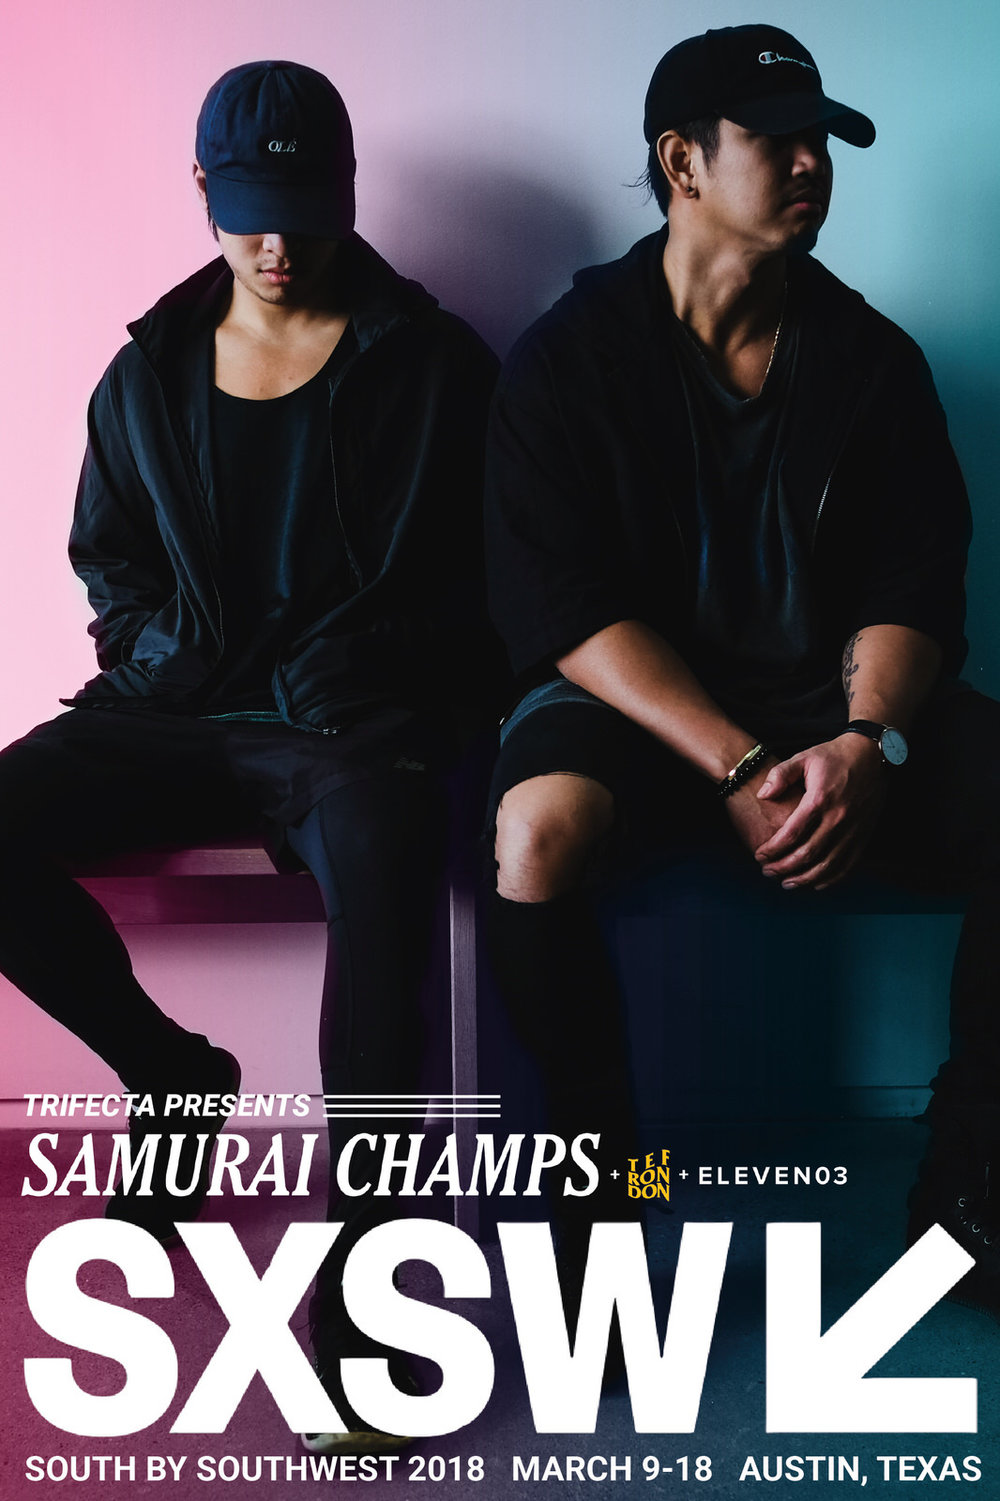 Samurai Champs Banners (Feb 2018 SXSW)_Website Poster.jpg